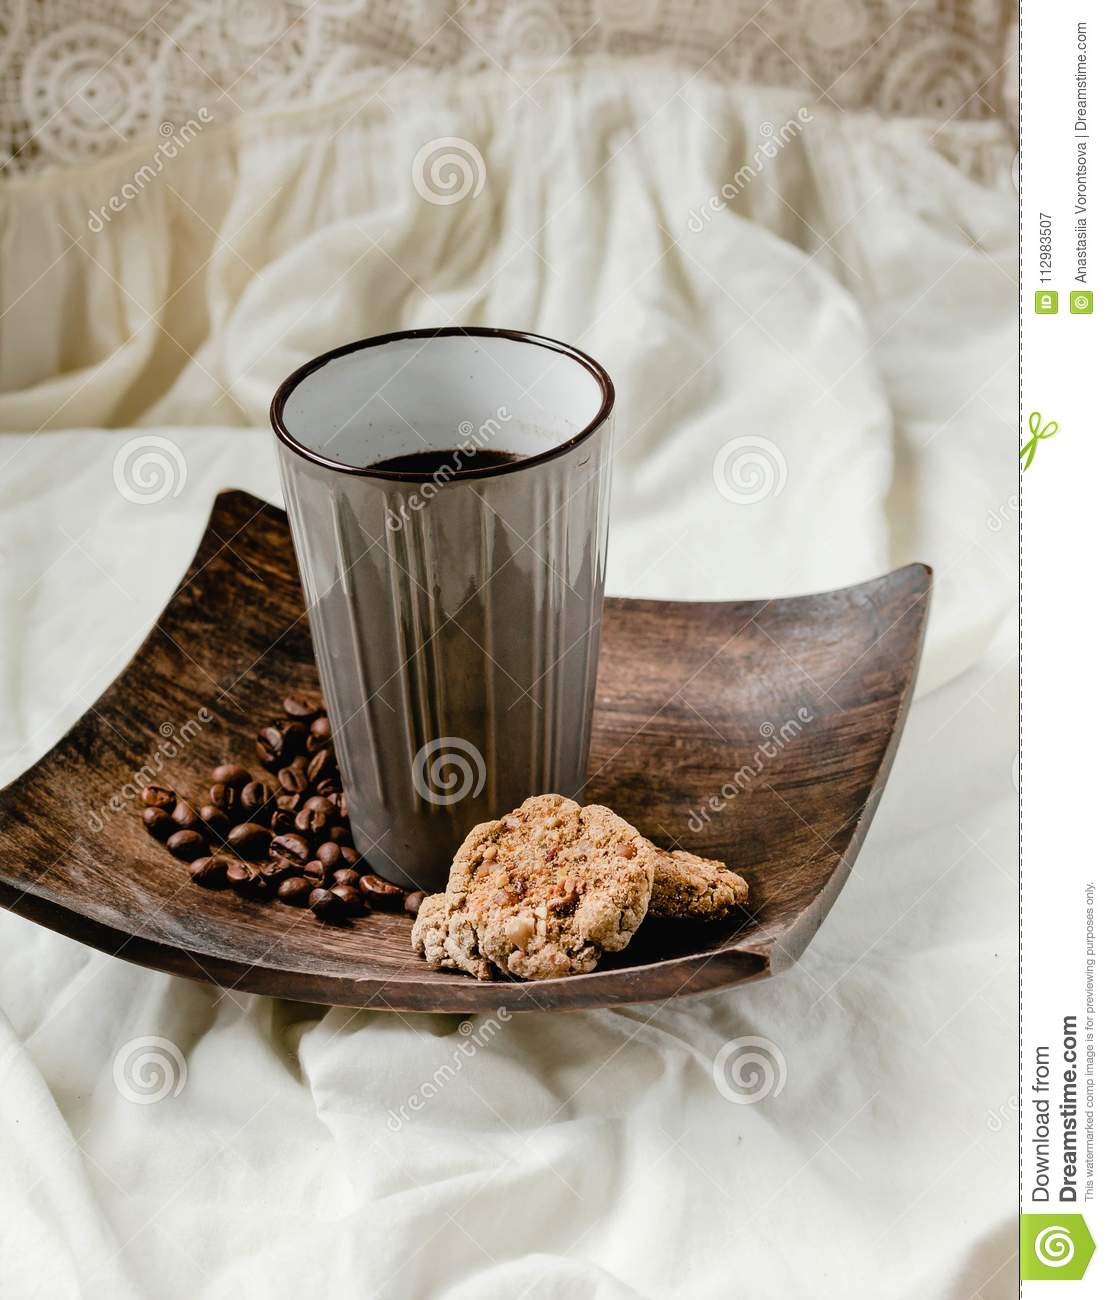 Breakfast. A cup of coffee with cookies with peanut butter, coffee beans in a wooden plate. Good morning concept.Selective focus.